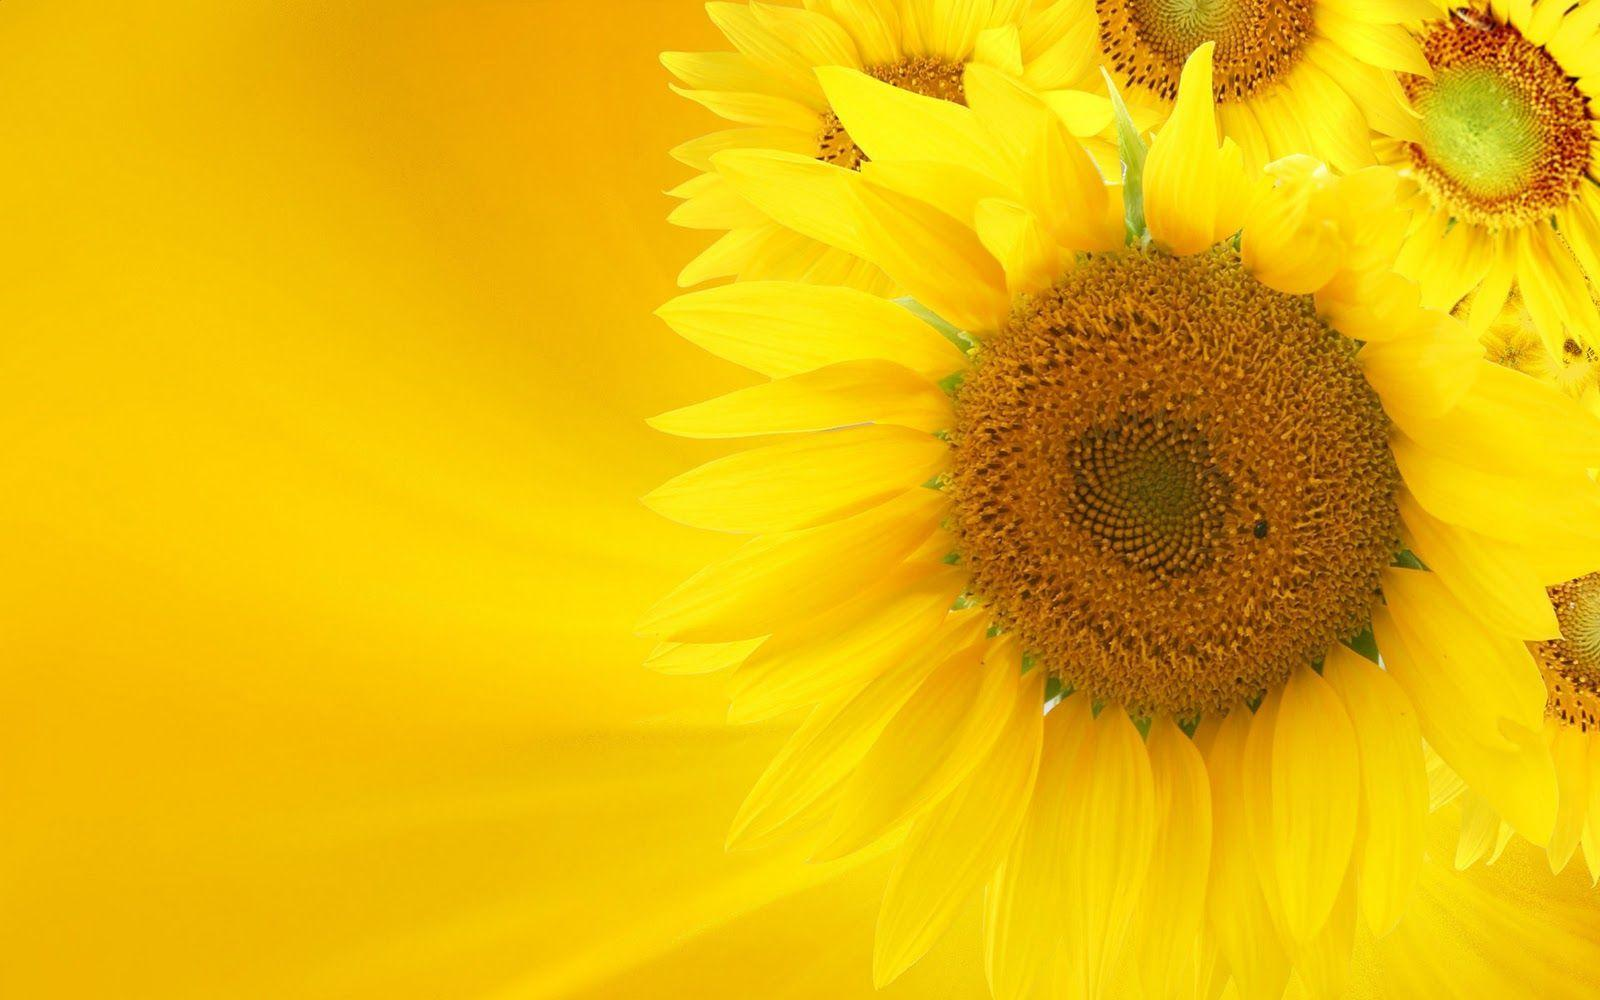 Yellow-Wallpaper-for-Mobile | HD Free Wallpapers Download